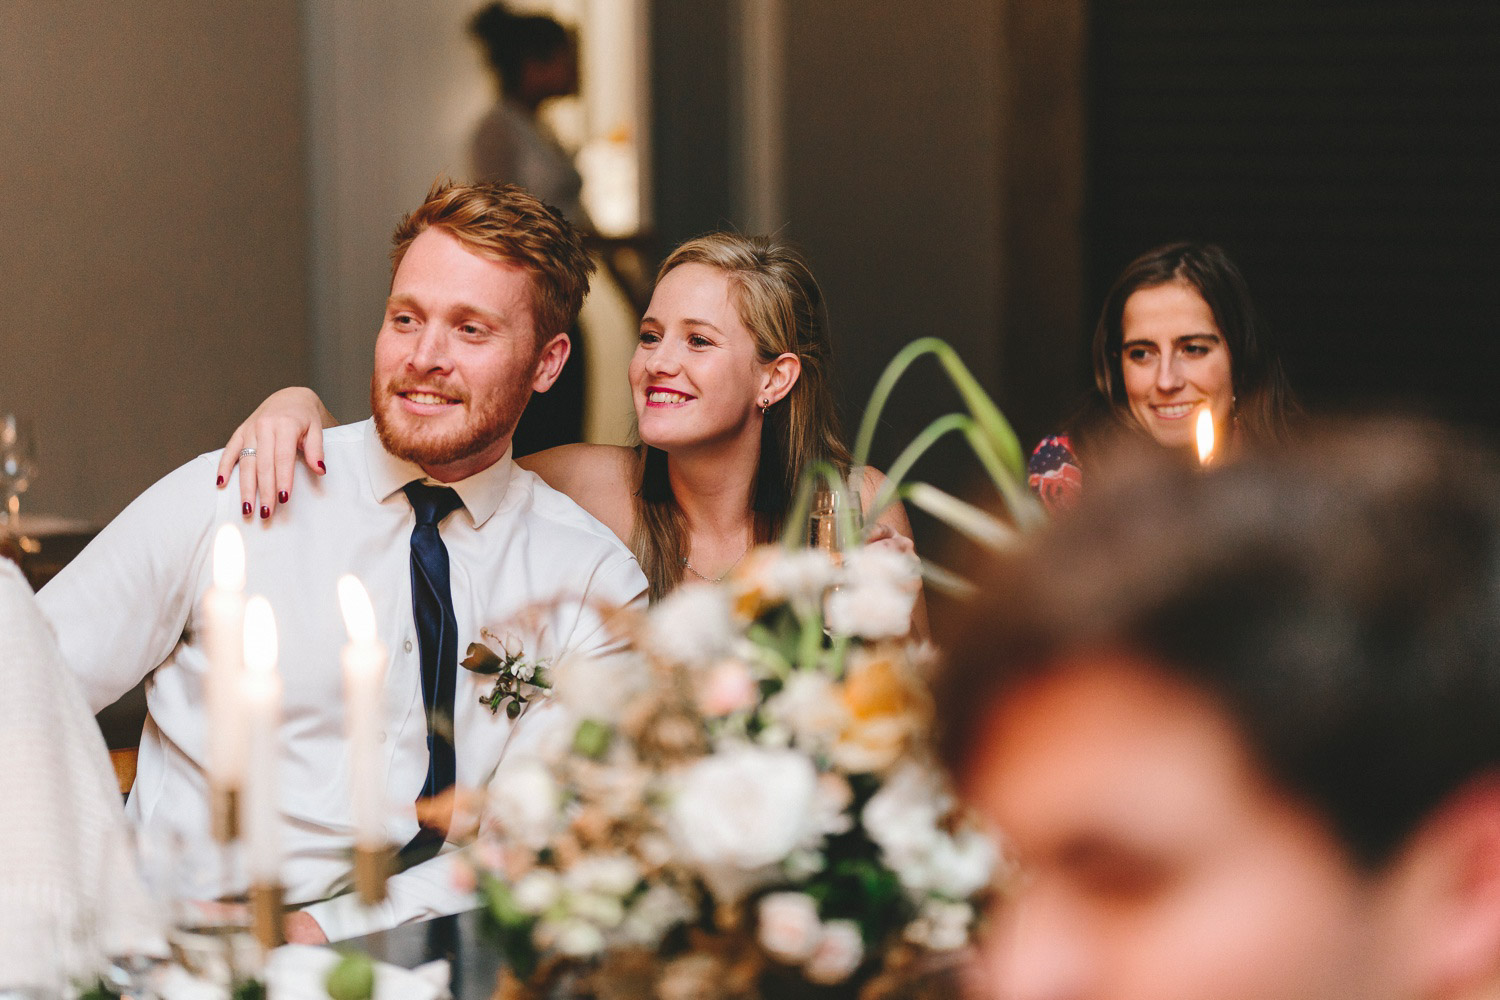 western-cape-photoghers-gen-scott-greyton-wedding-photography-charlie-ray149.jpg